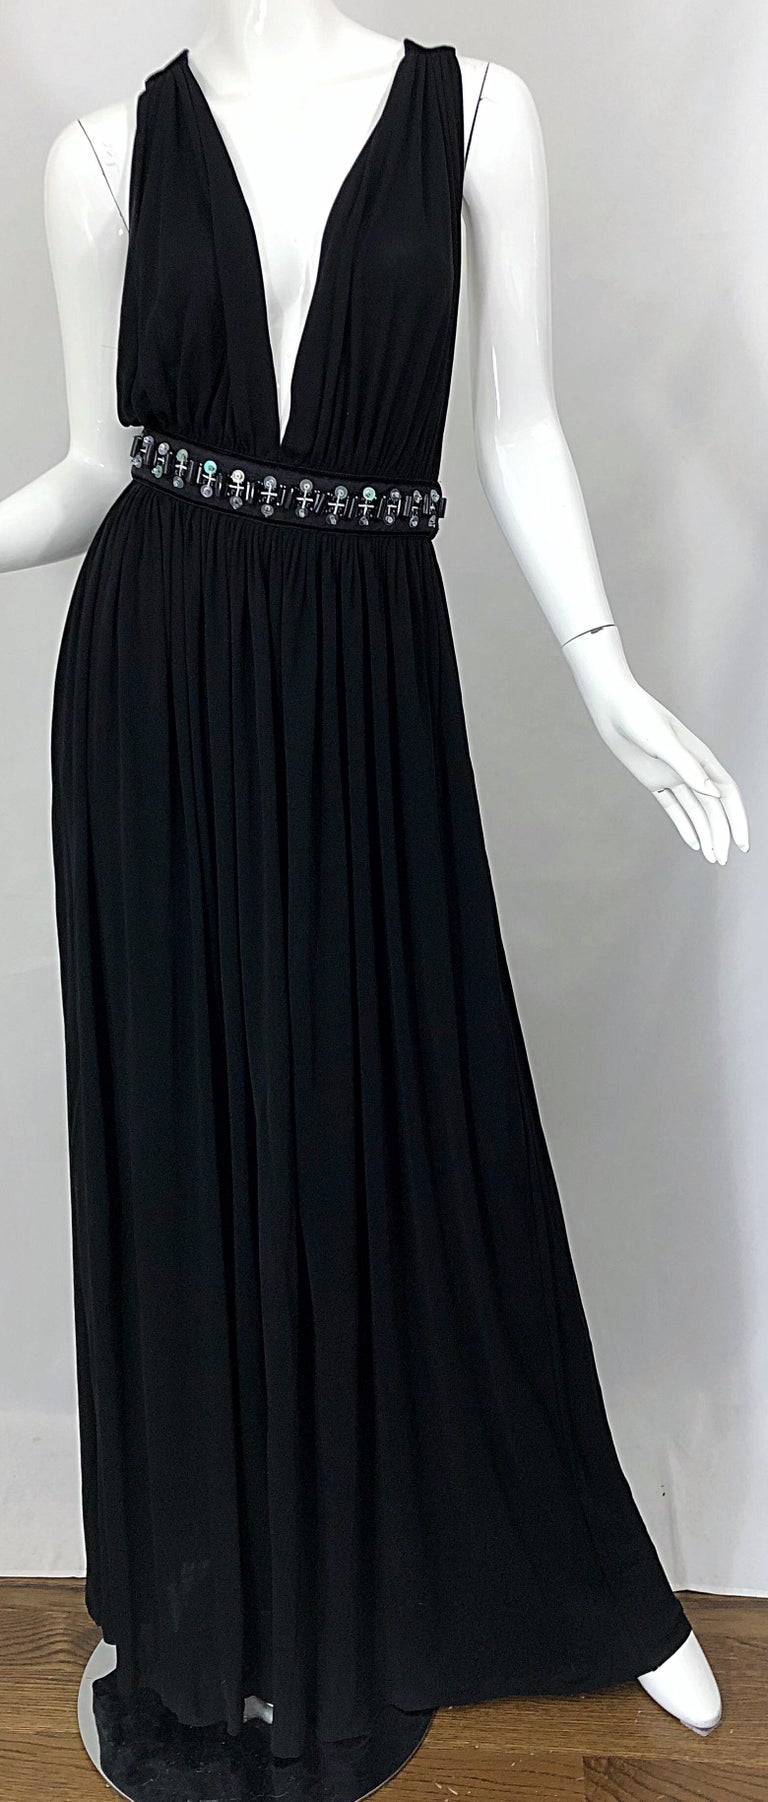 1990s Dolce & Gabbana D&G Black Plunging Sexy Beaded Sleeveless Vintage 90s Gown For Sale 6